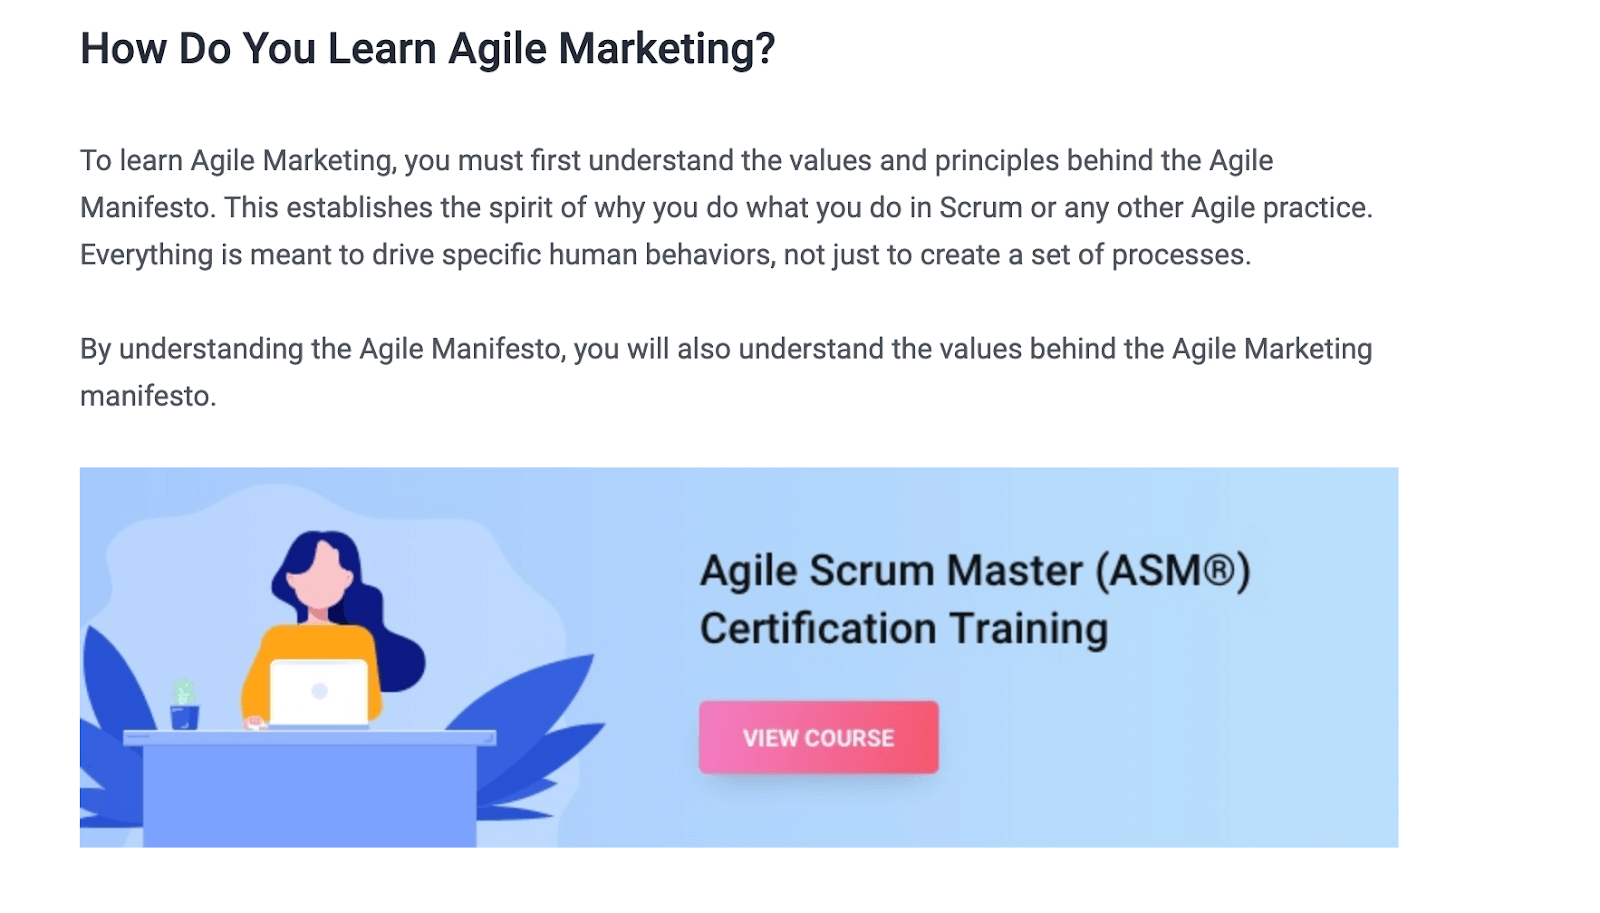 Simplilearn: What Is Agile Marketing and Why Do You Need It (Article + Certification)